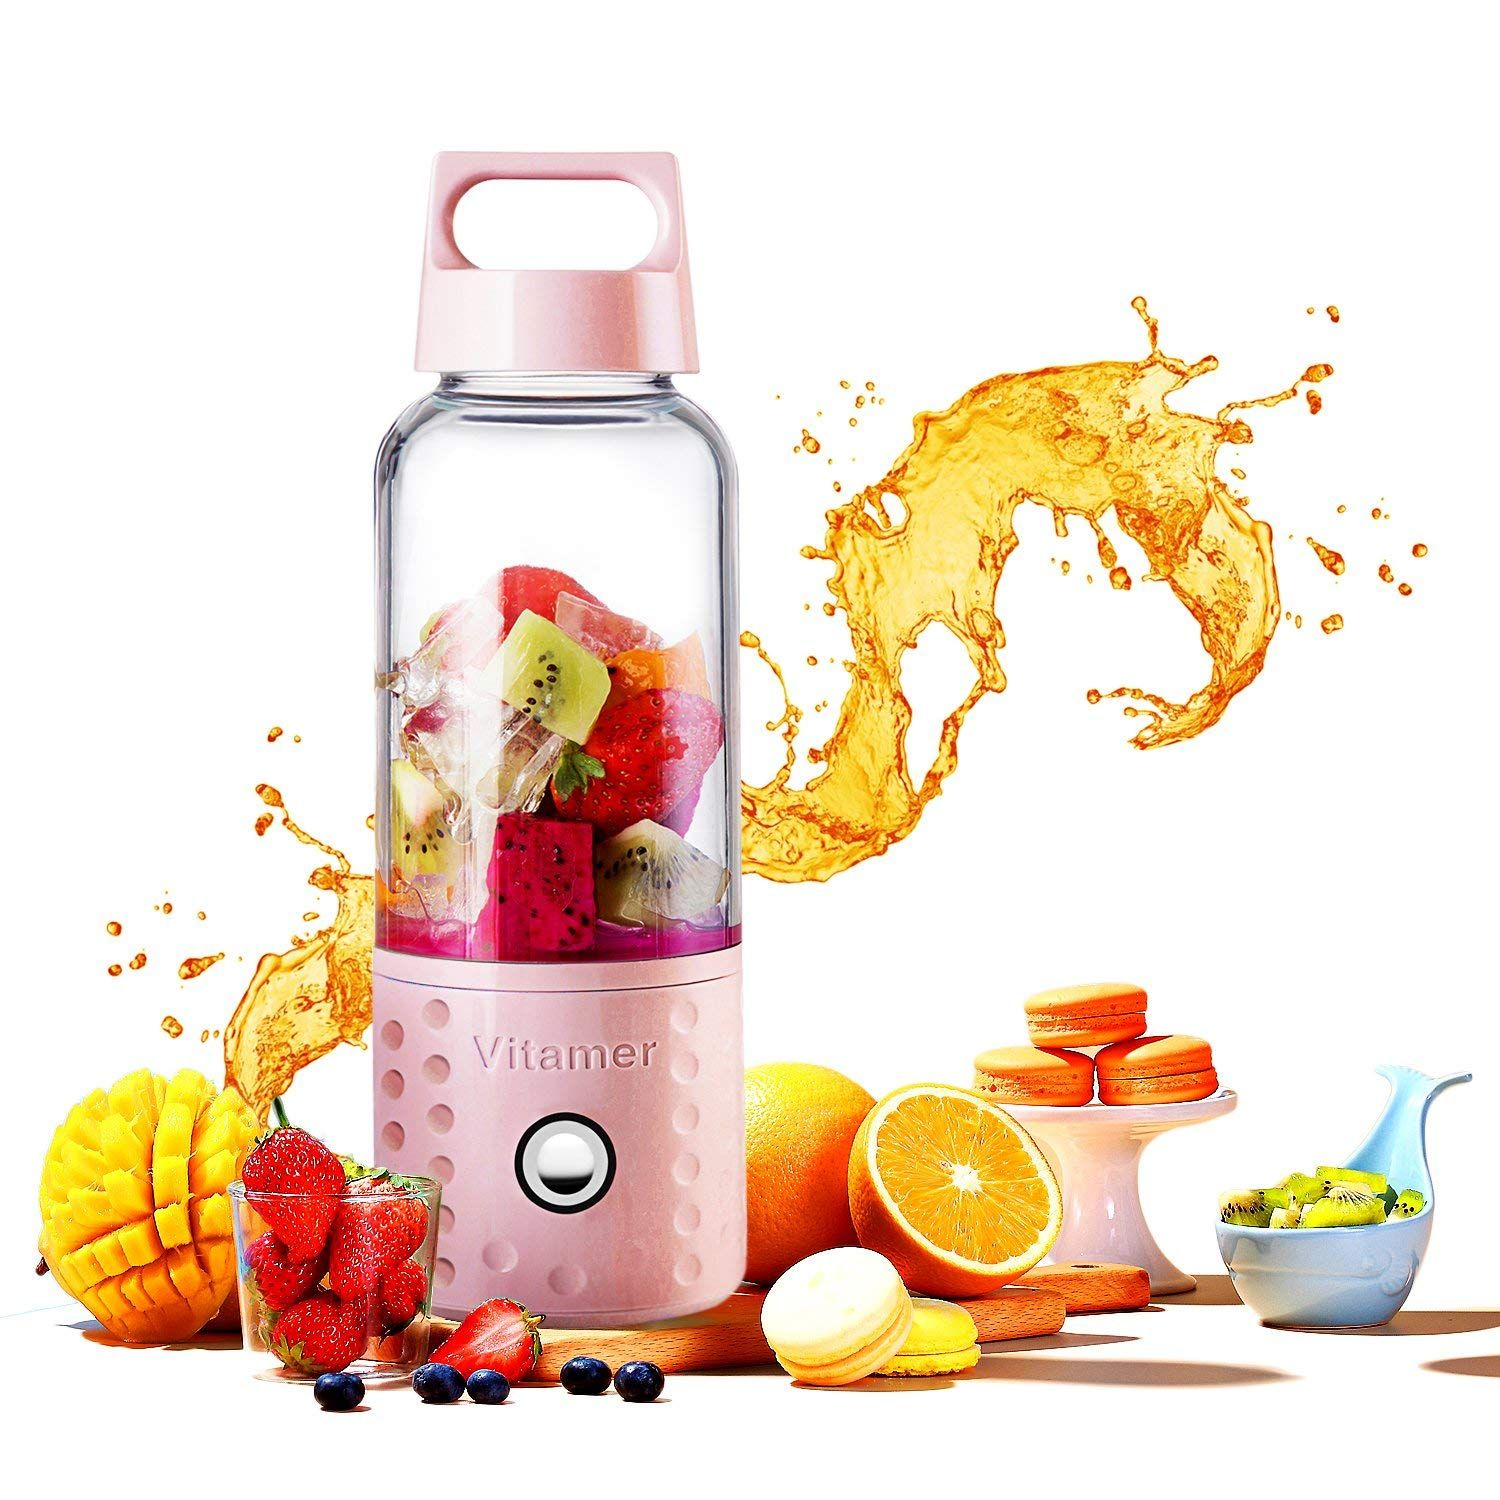 Fdit 500ml USB Rechargeable Portable Electric Vegetable Fruit Juicer Cup for Home Office Travel black